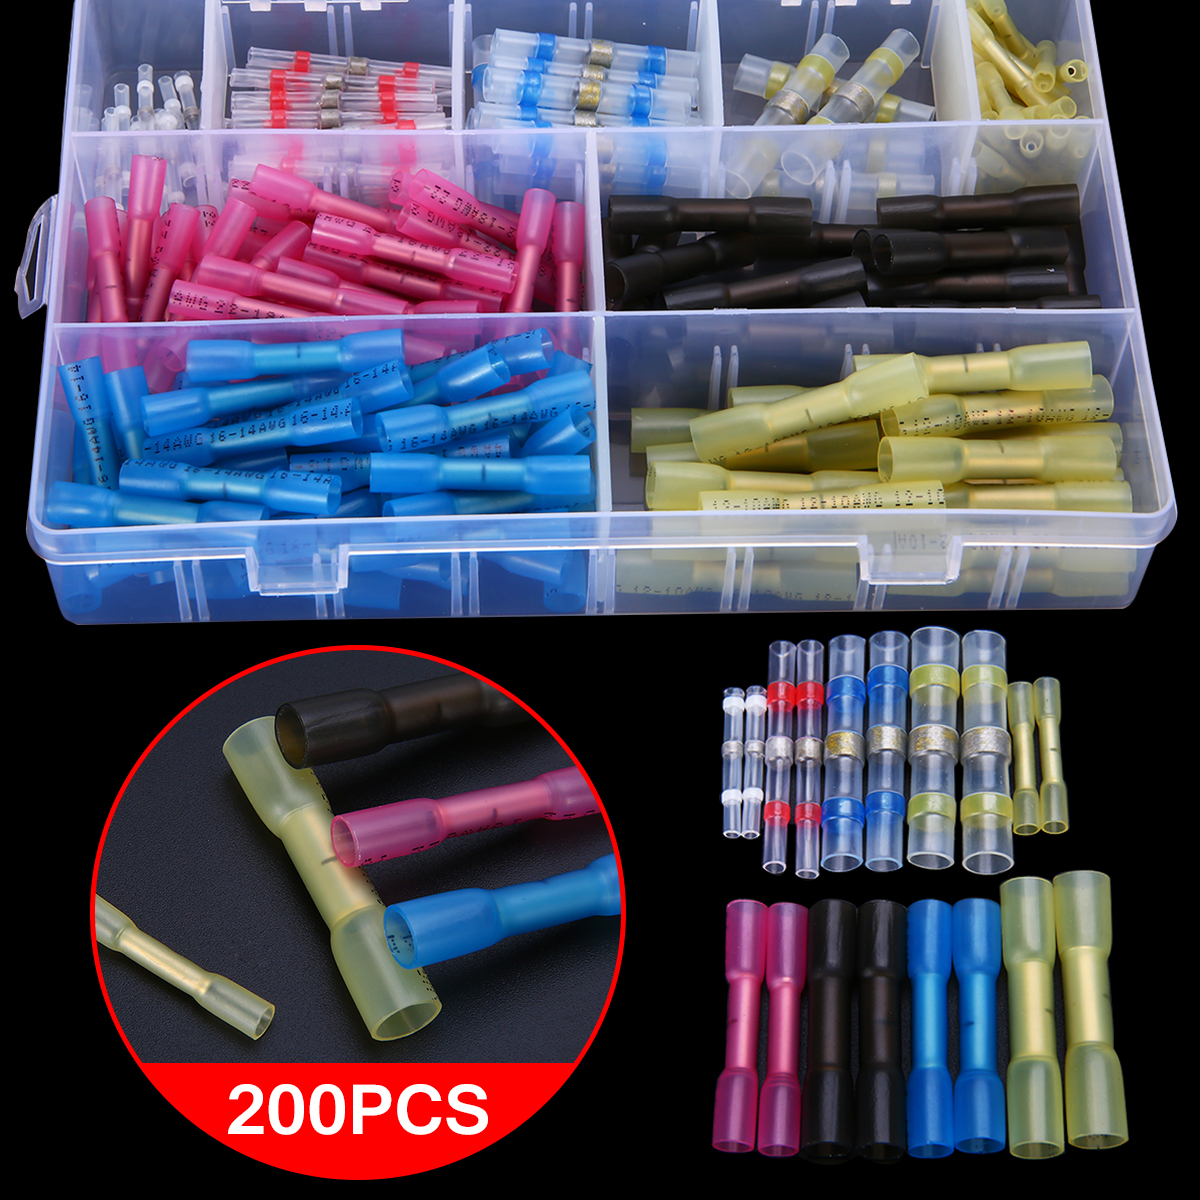 200pcs Waterproof Wire Butt Connectors Insulated Heat Shrink Terminals Soldering Connectors Assortment kit 430pcs cold pressed wire connectors insulated splice terminals heat shrink tube kit red